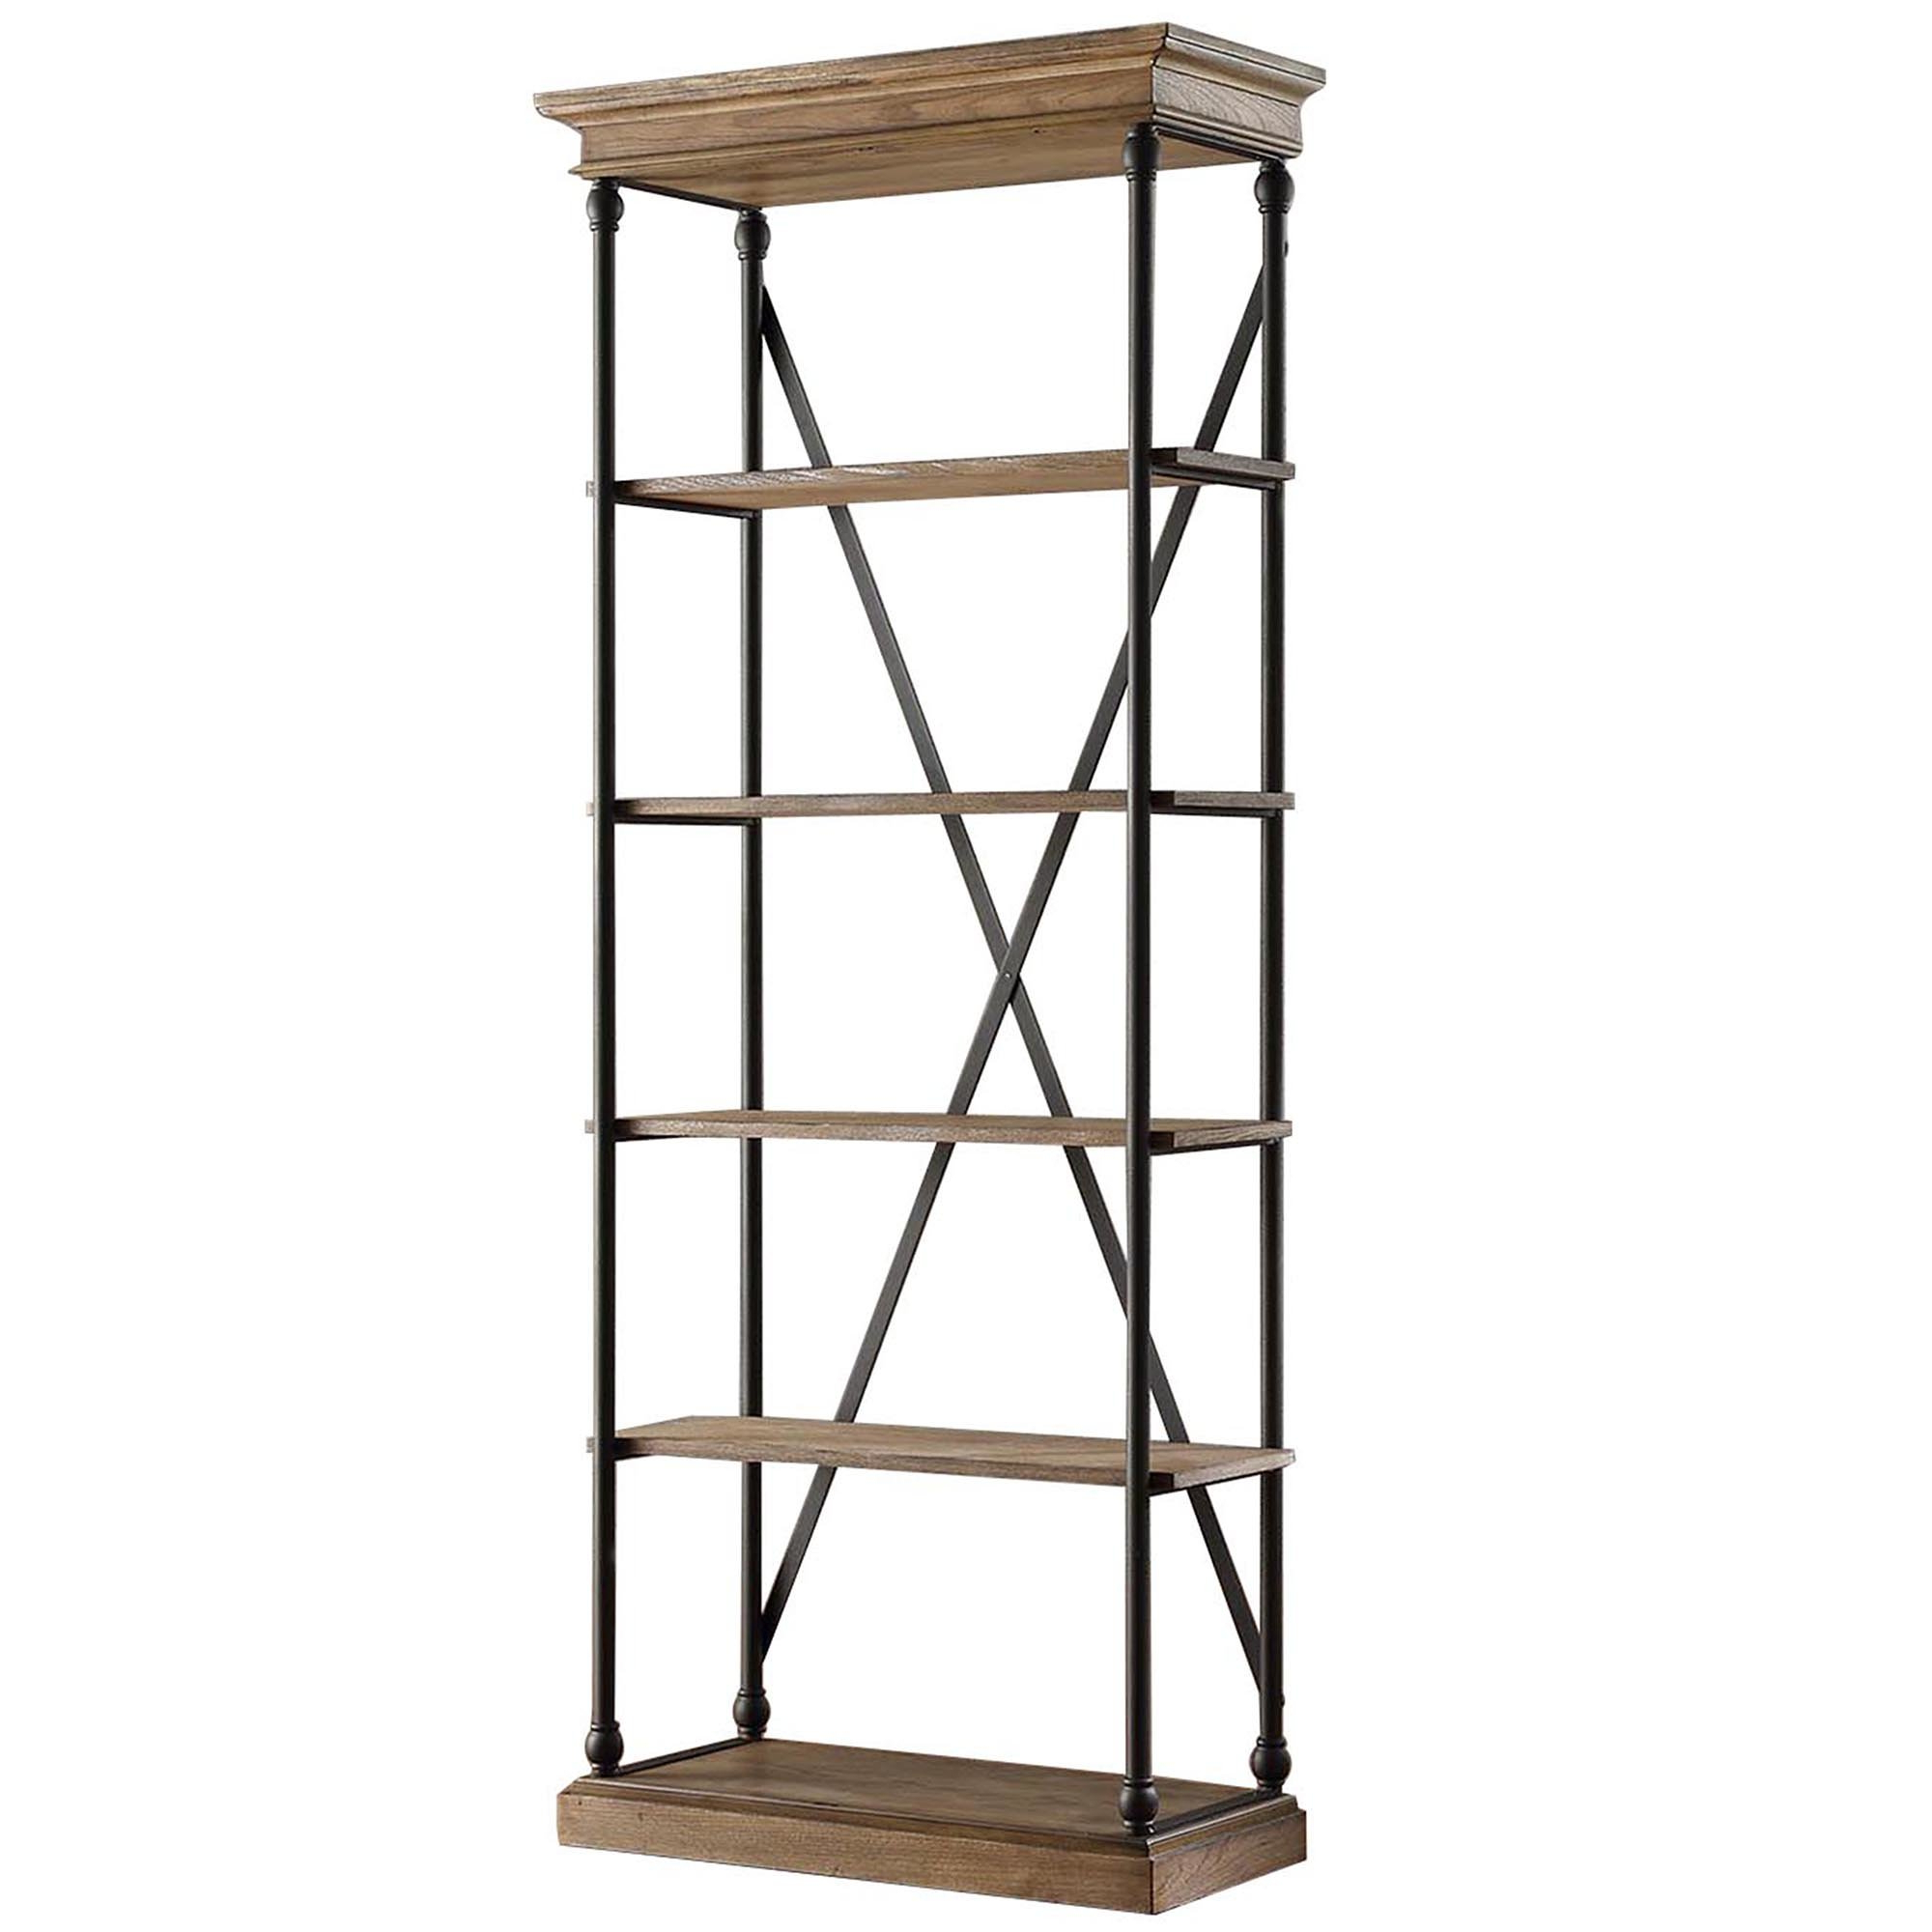 Poynor Etagere Bookcases With Regard To Widely Used Poynor Etagere Bookcase (View 14 of 20)